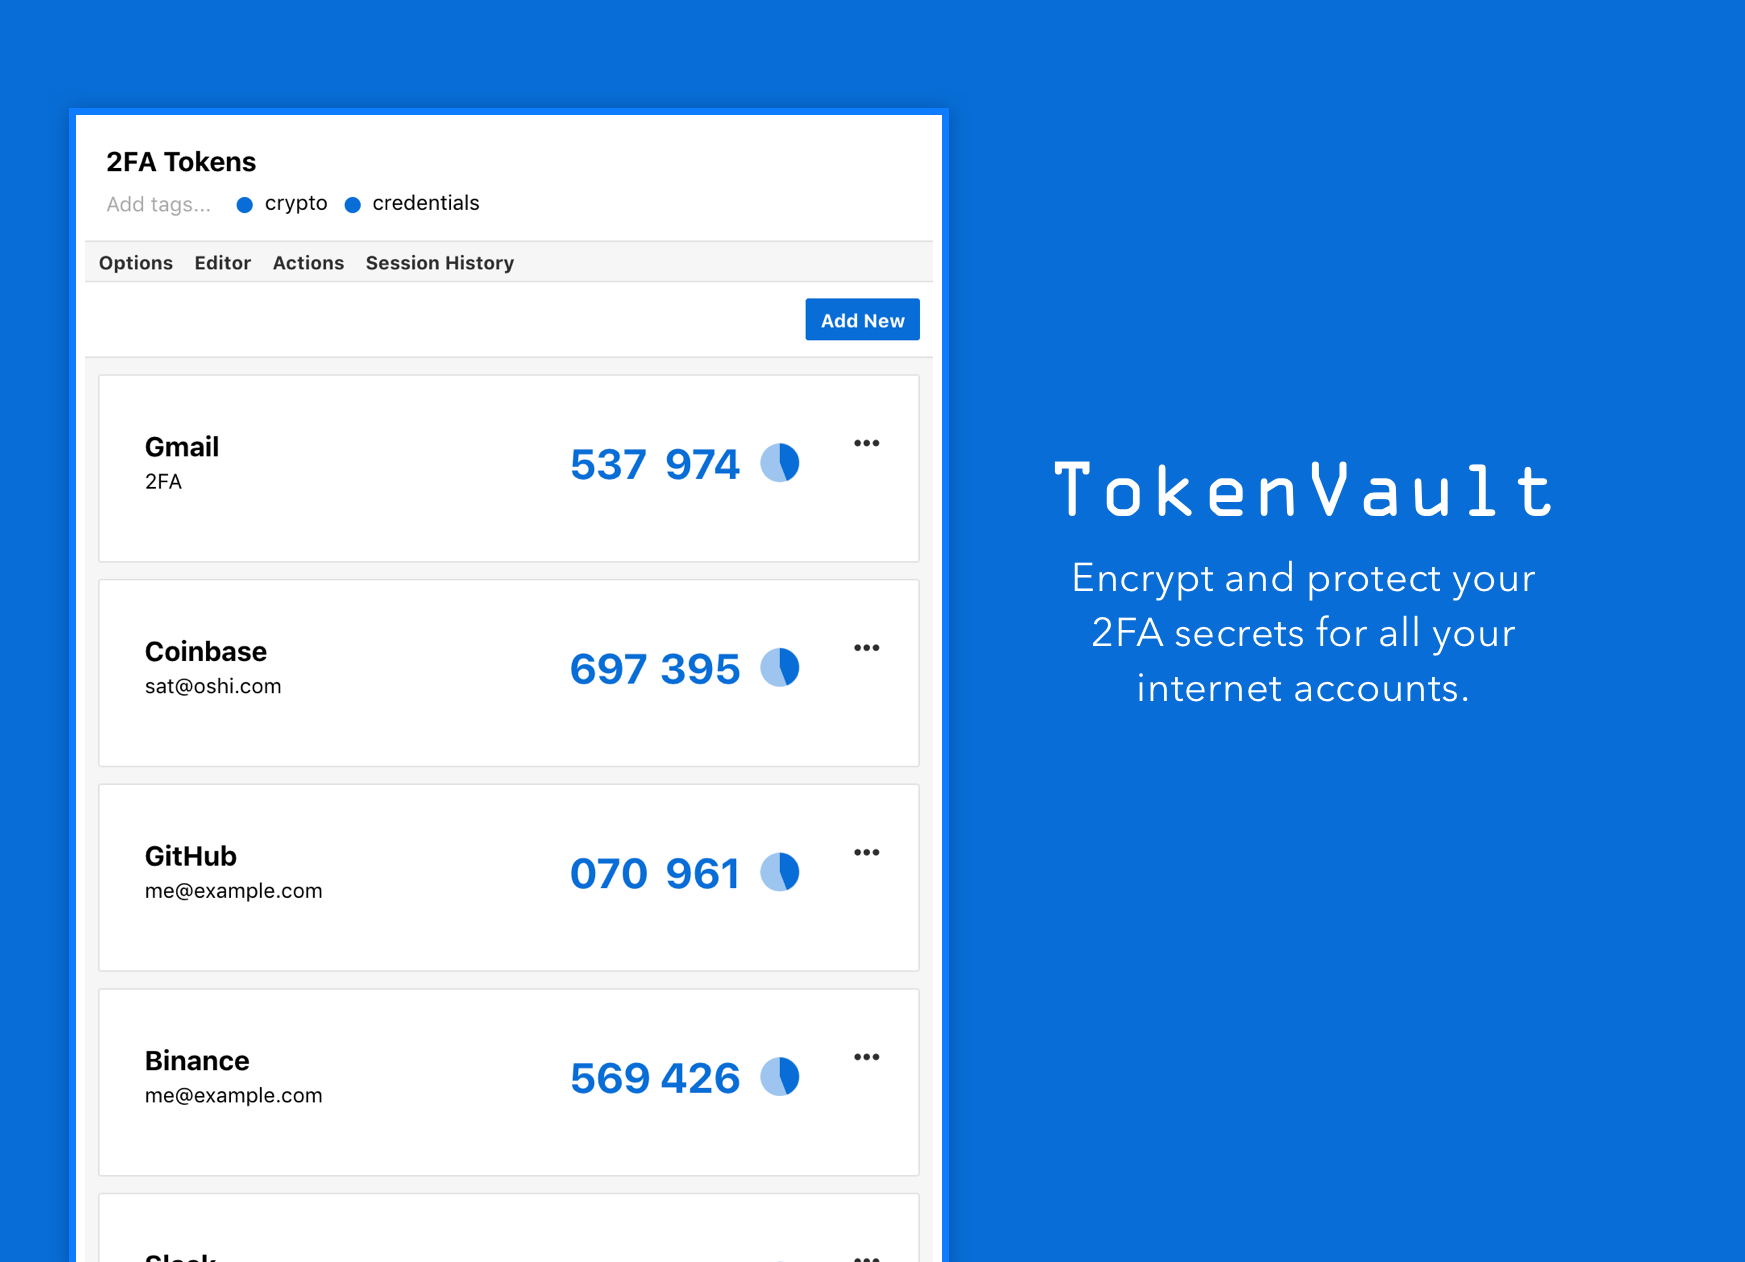 Encrypt and protect your 2FA secrets for all your internet accounts. TokenVault handles your 2FA secrets so that you never lose them again, or have to start over when you get a new device.